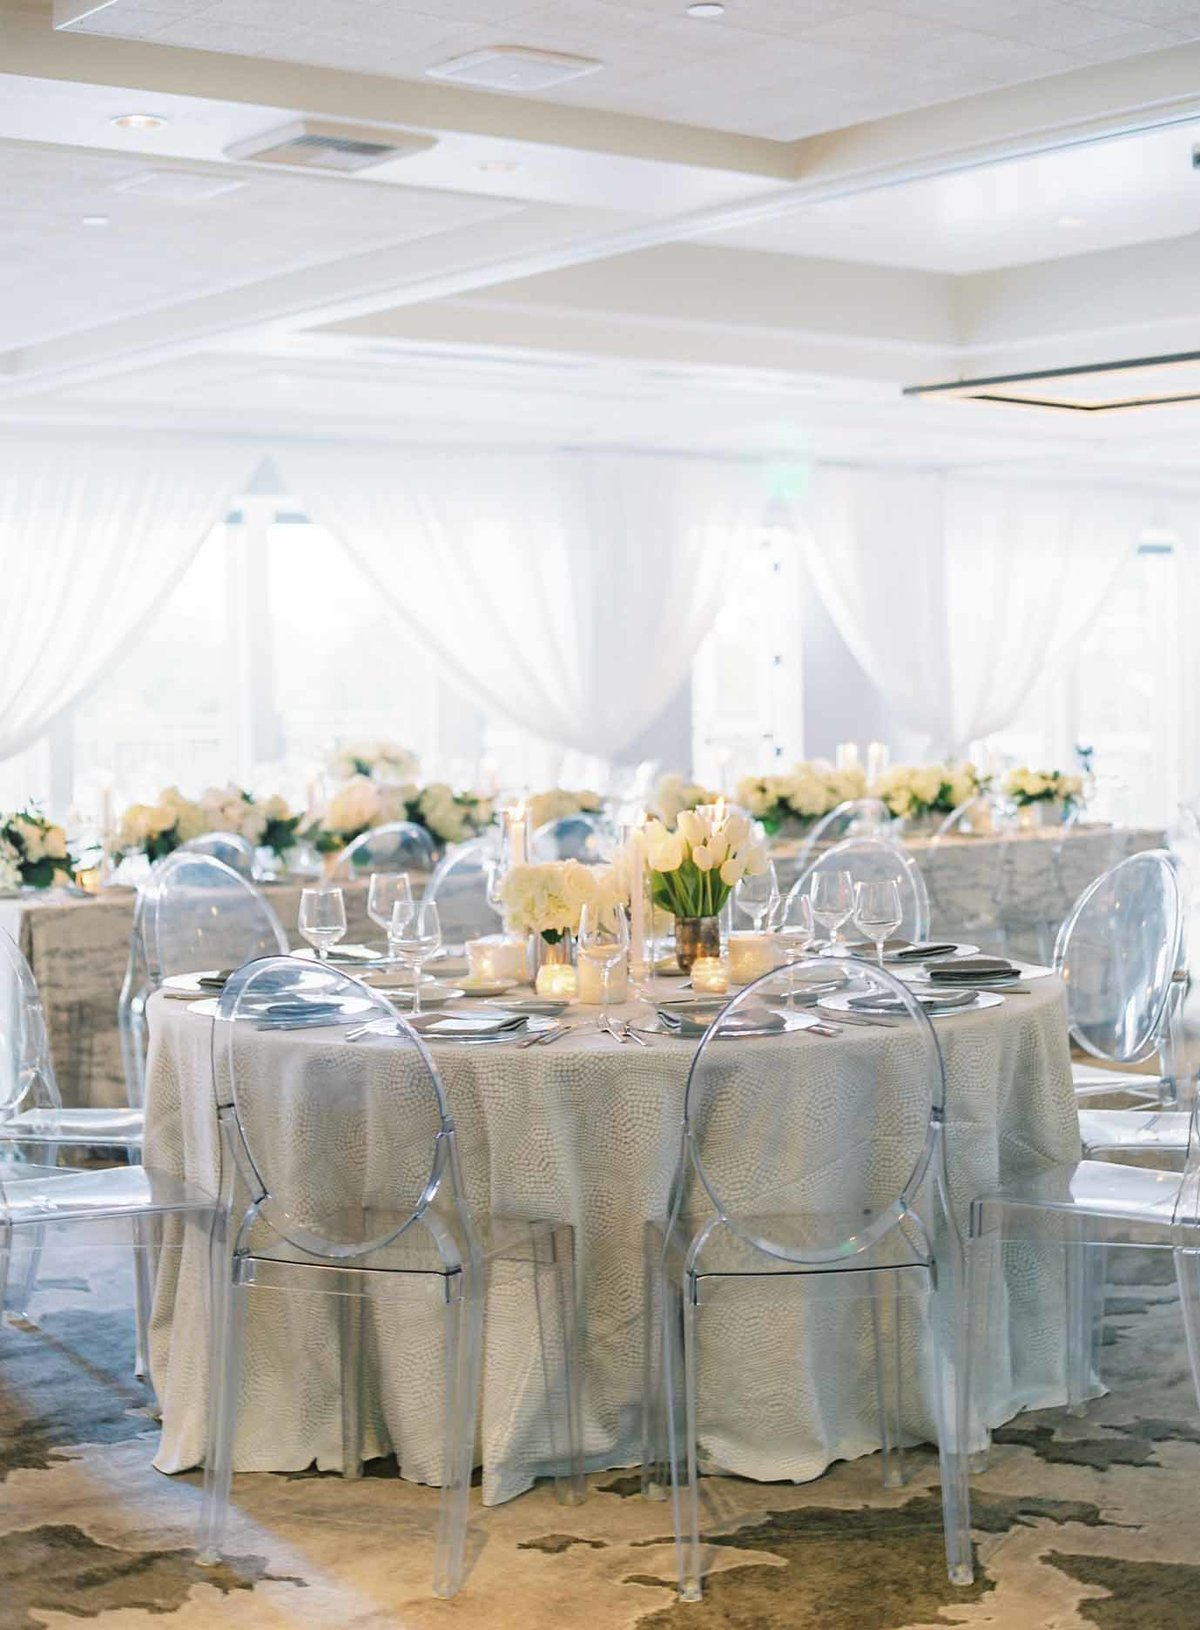 Elegant grey and white Wedding reception at Overlake golf and country club